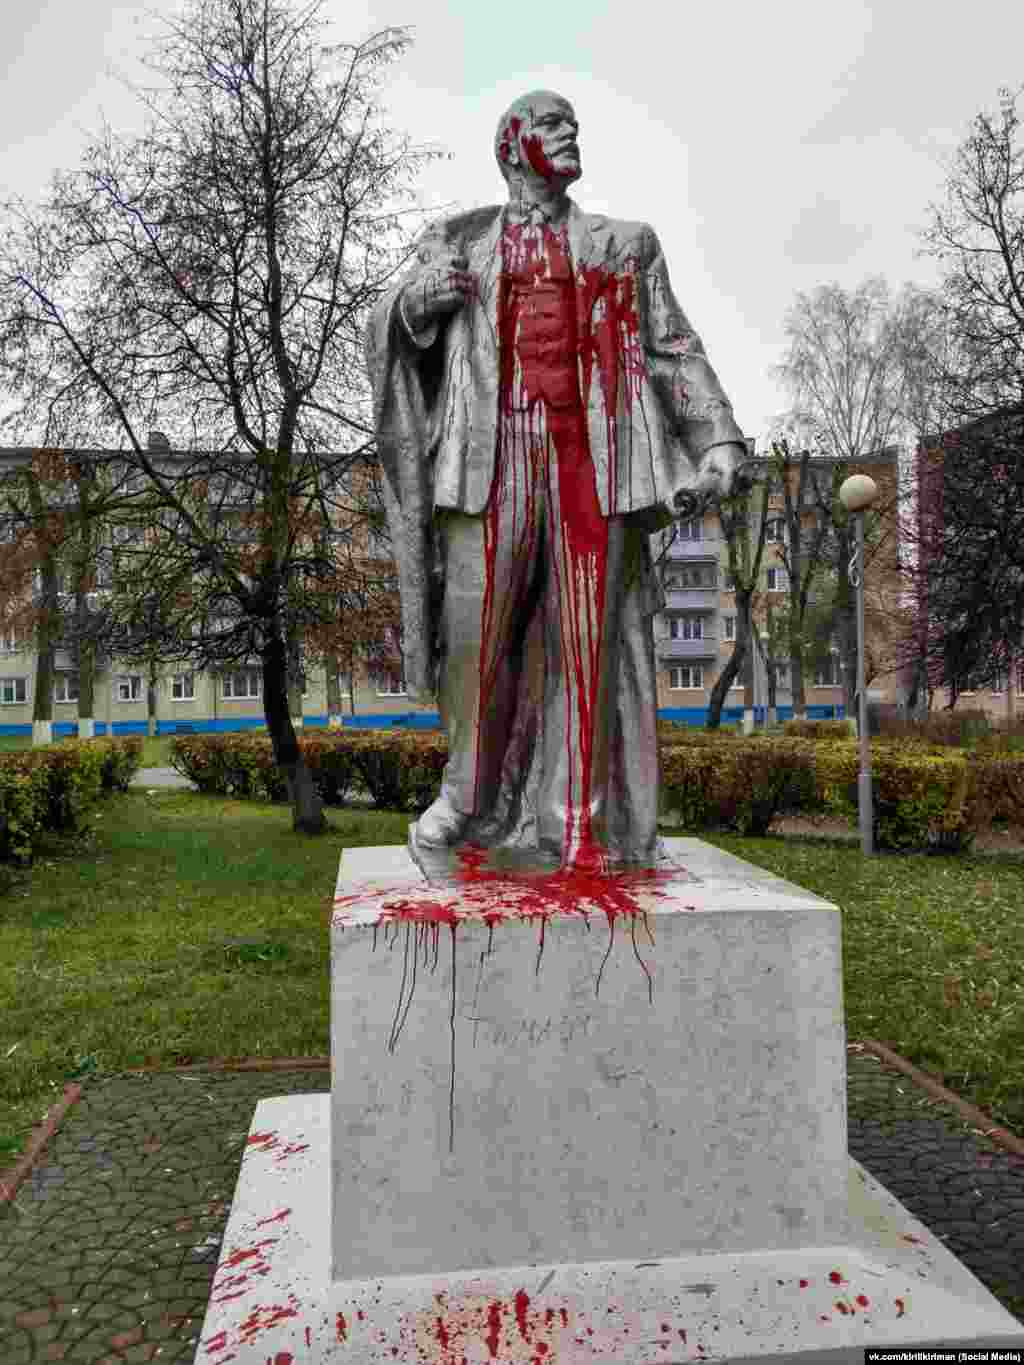 In the city of Lida, around 175 kilometers from Minsk, activists vandalized the town's Lenin statue with red paint.